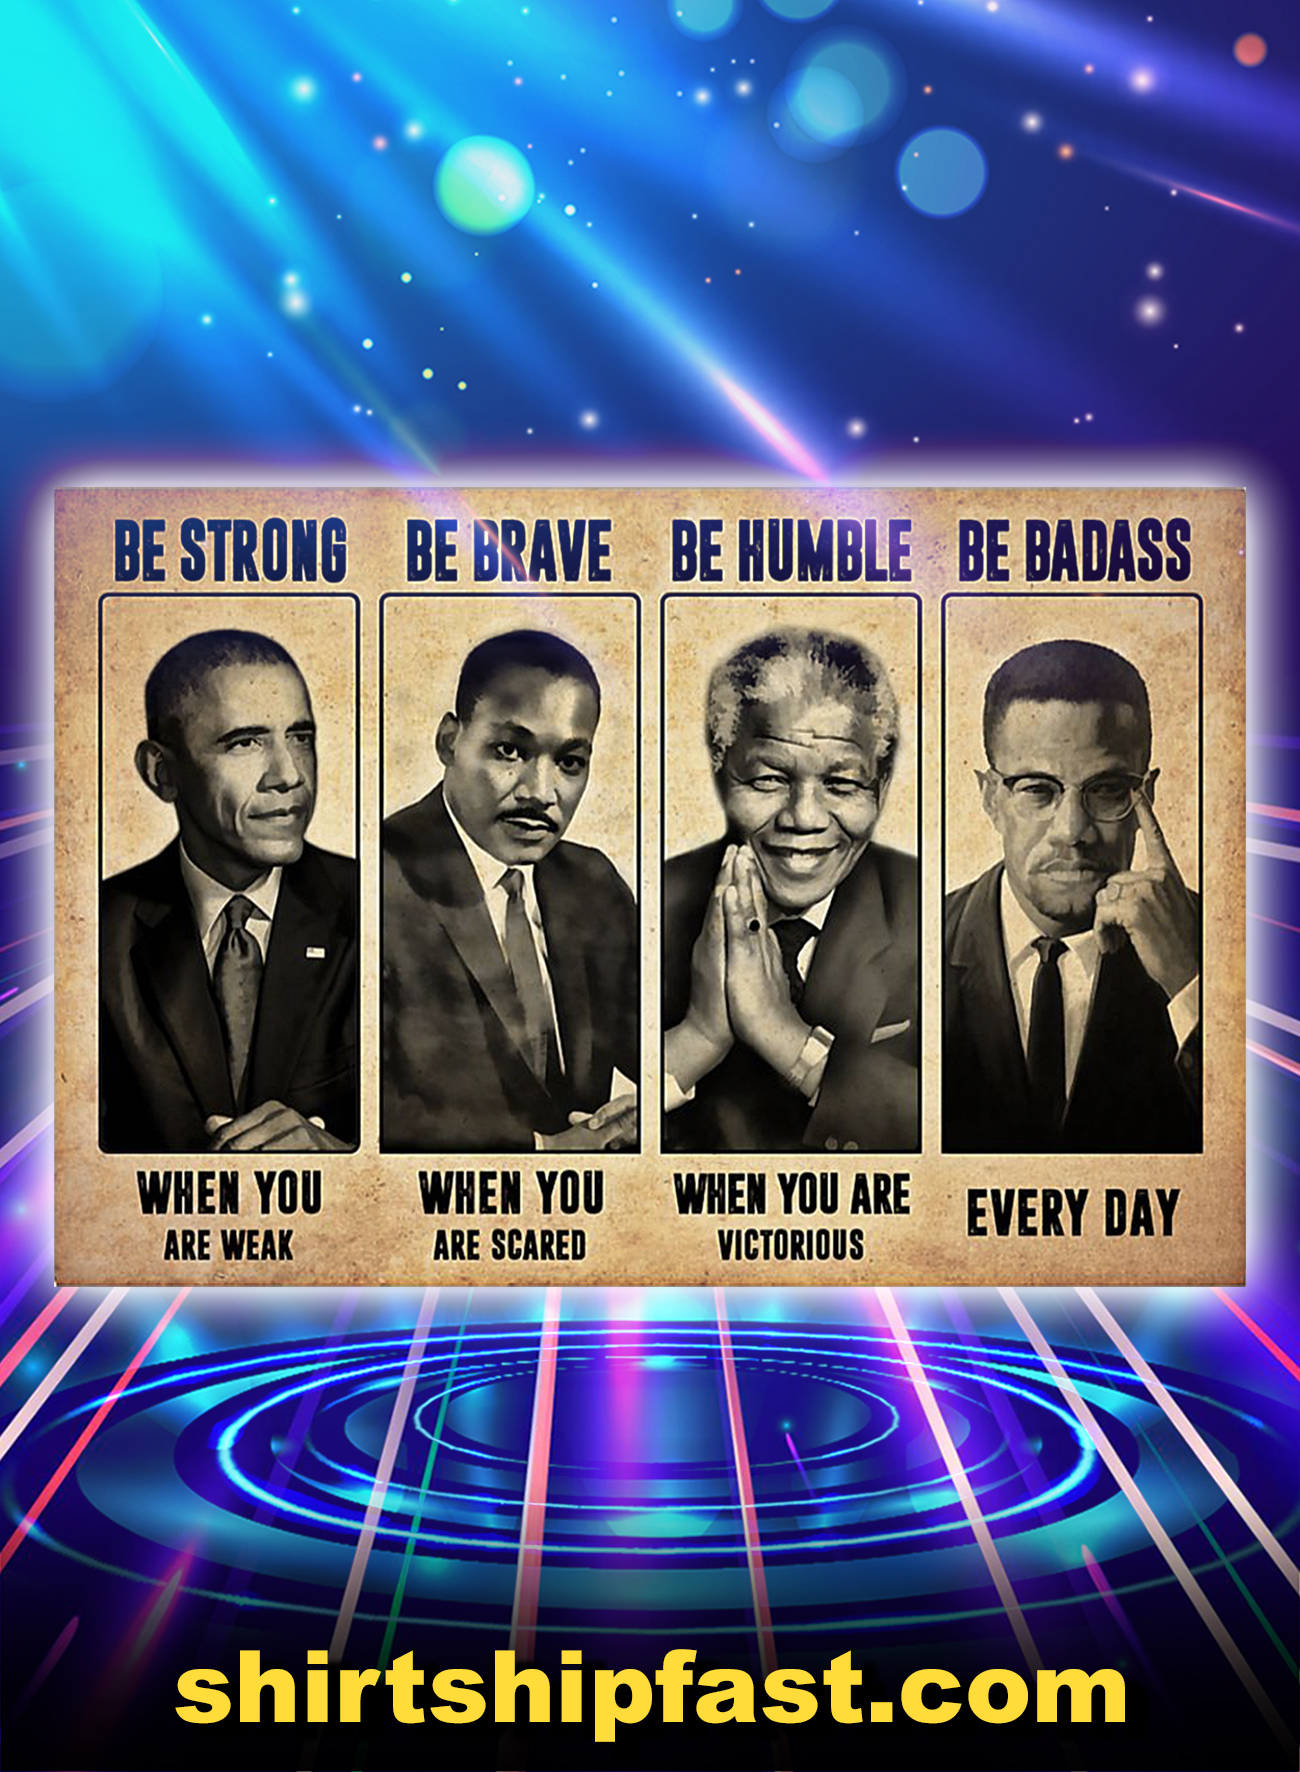 The civil right leads be strong be brave be humble be badass poster - A1